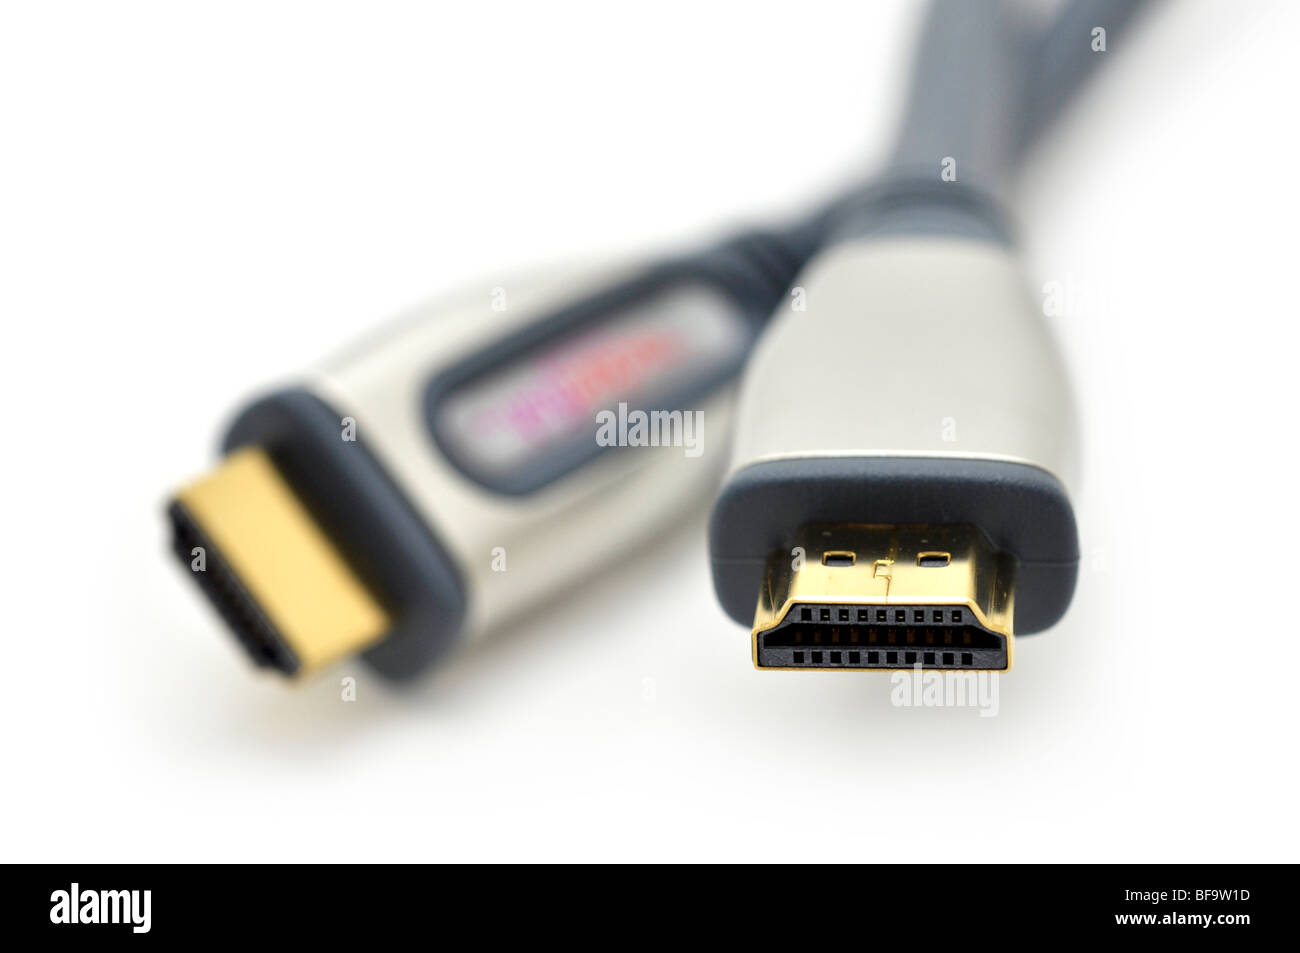 HDMI (High Definition Media Interface) Cable Connectors - Stock Image